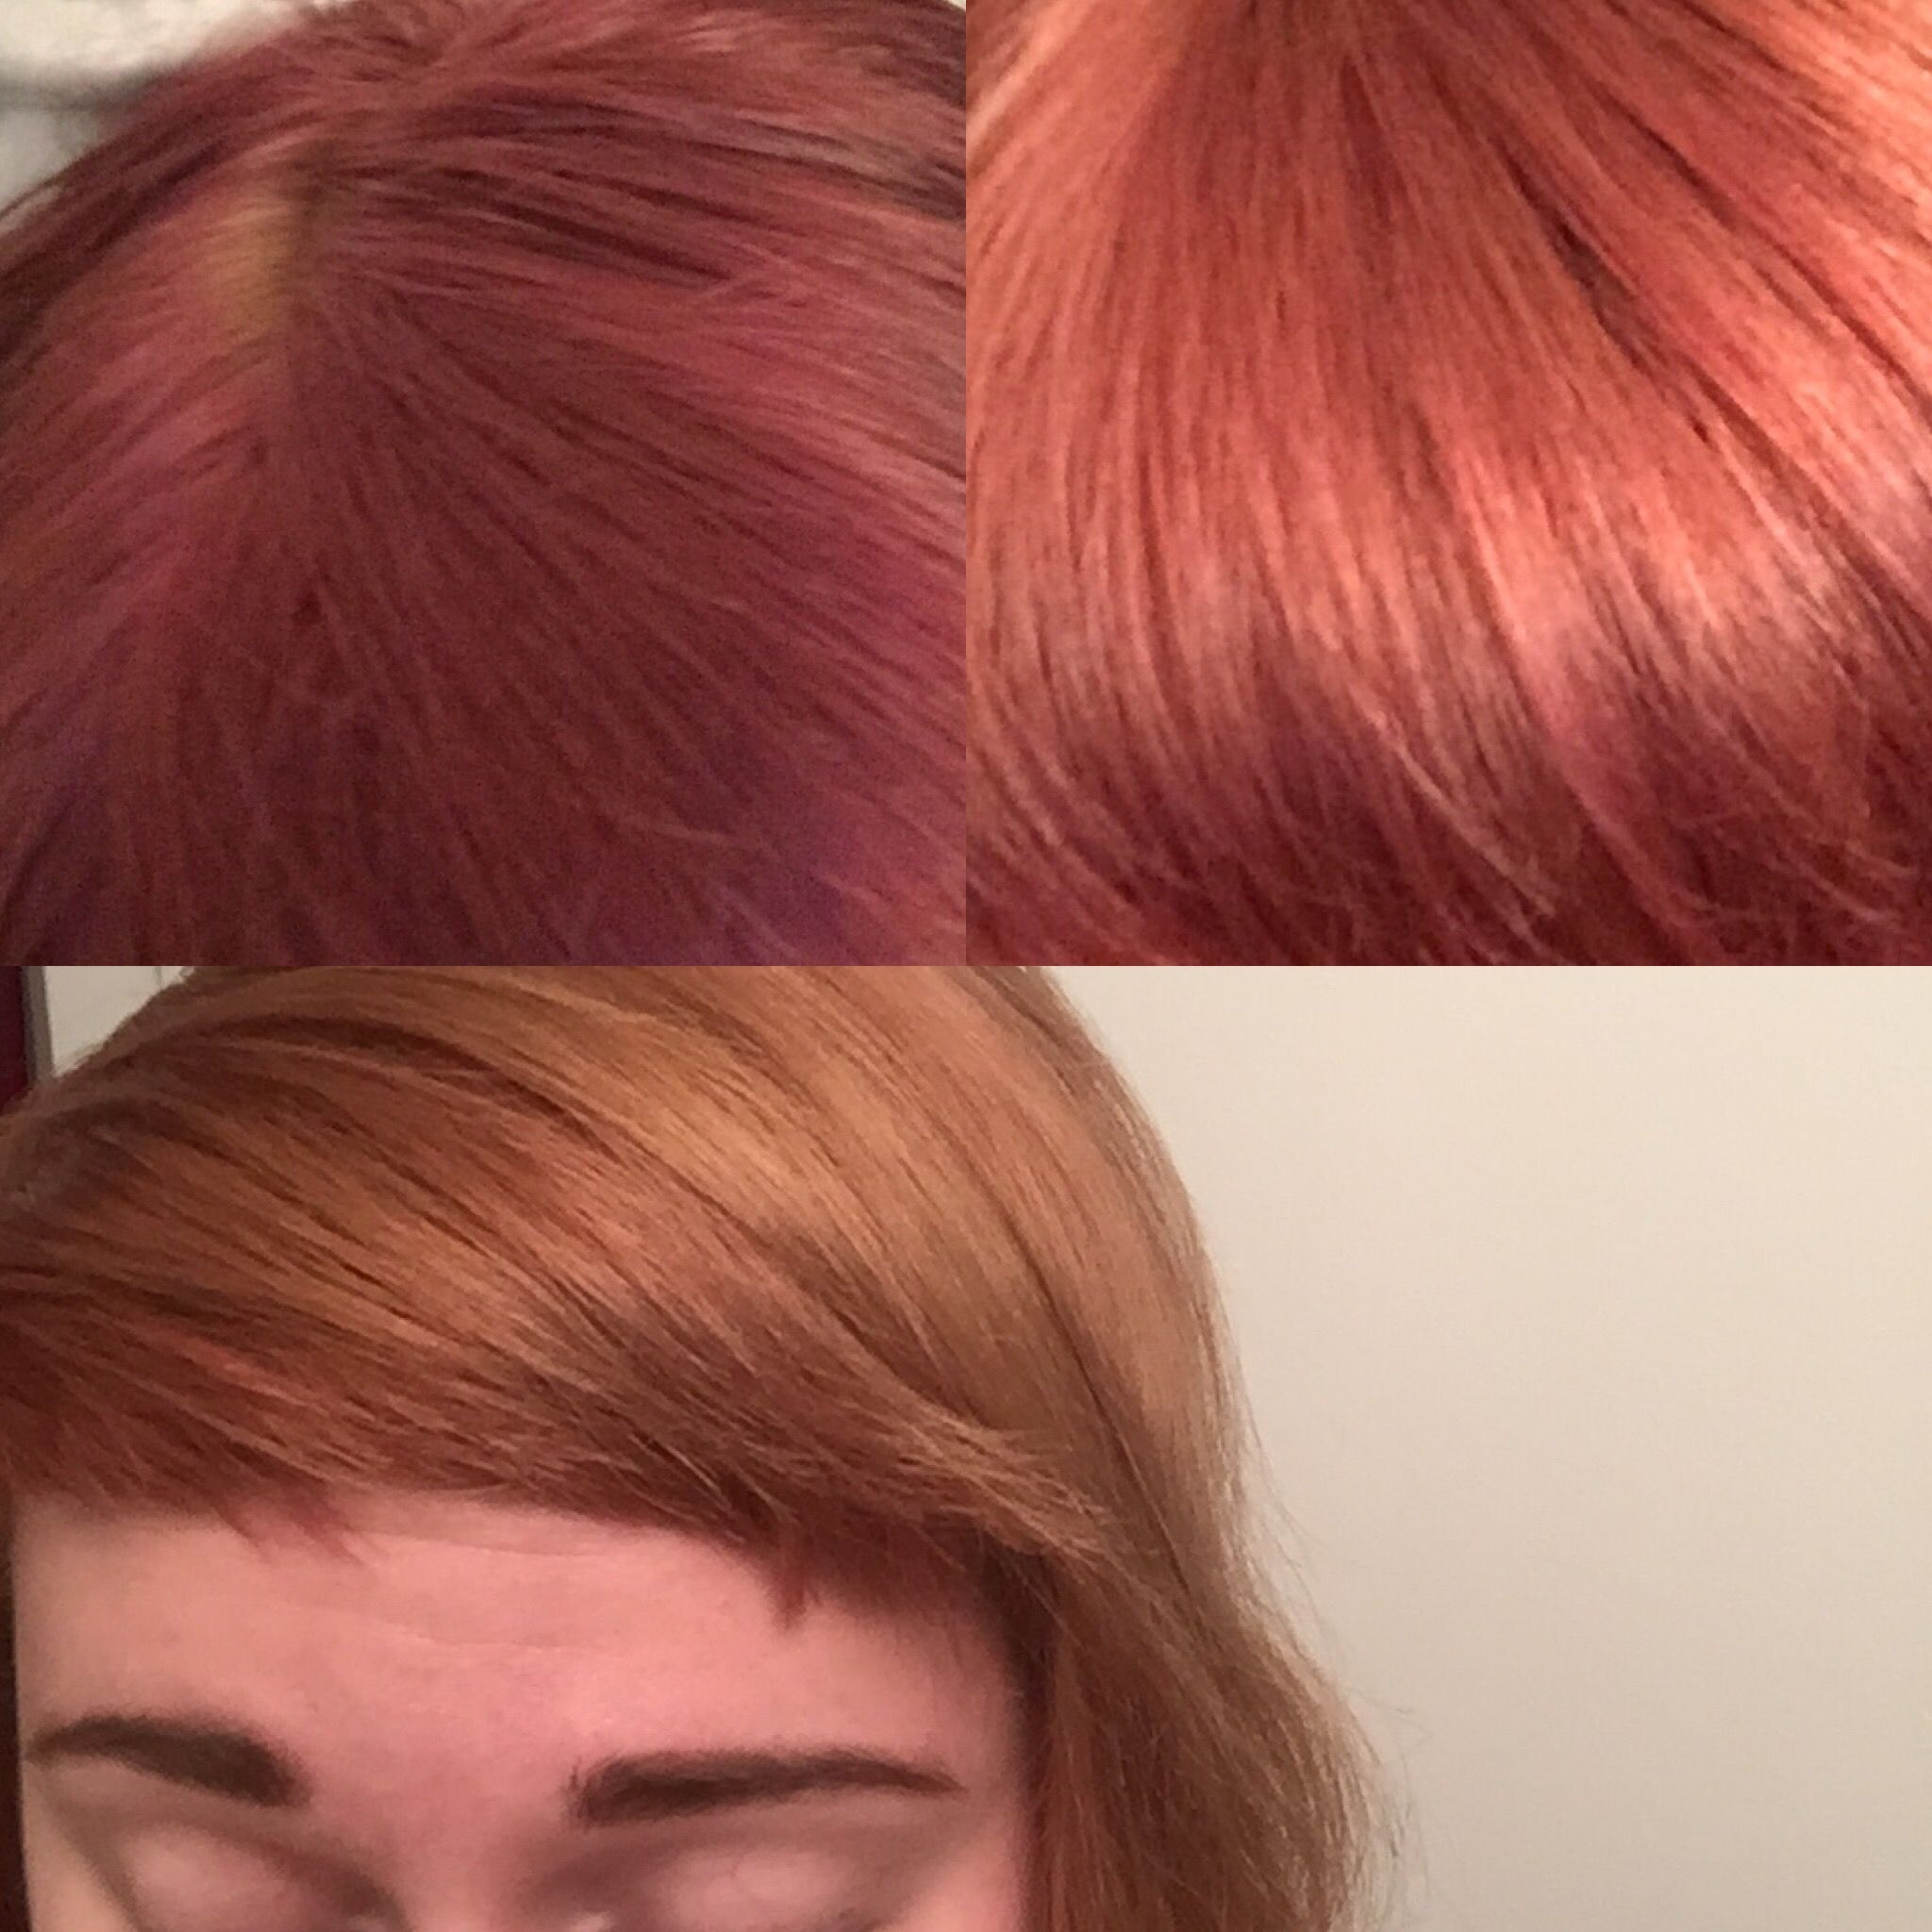 Hair Dye Removal I Popped Open 10 15 1000 Mg Vitamin C Capsules And Mixed With A Lemon Shampoo And Left On Last Night For 30 4 Hair Dye Removal Dyed Hair Hair